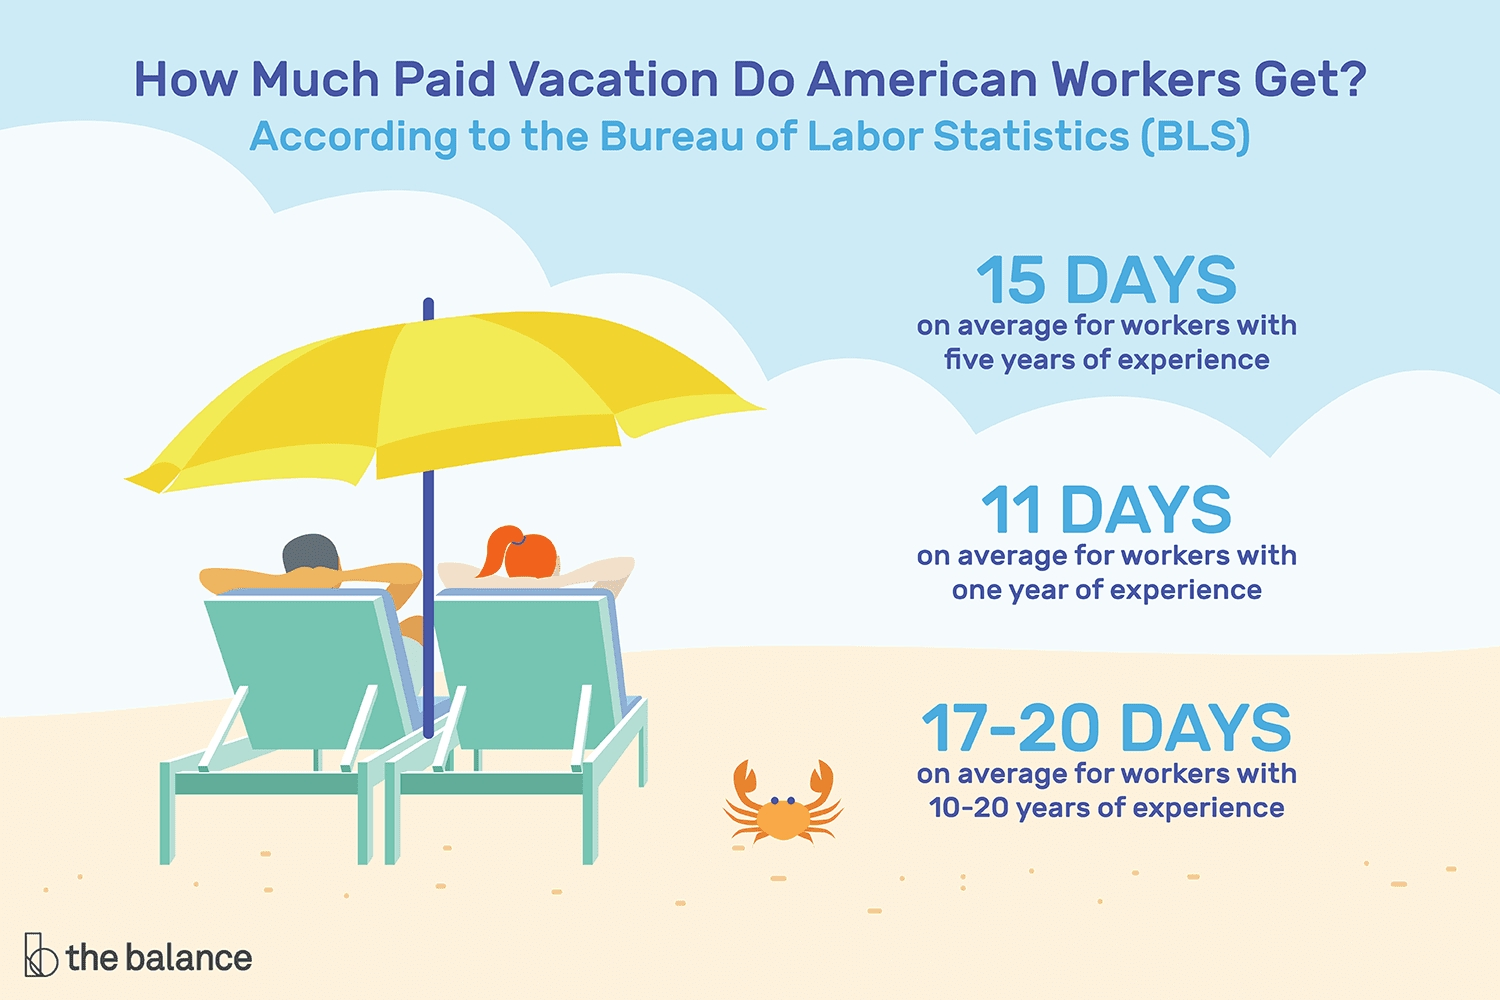 Vacation Time And Pay For Employees